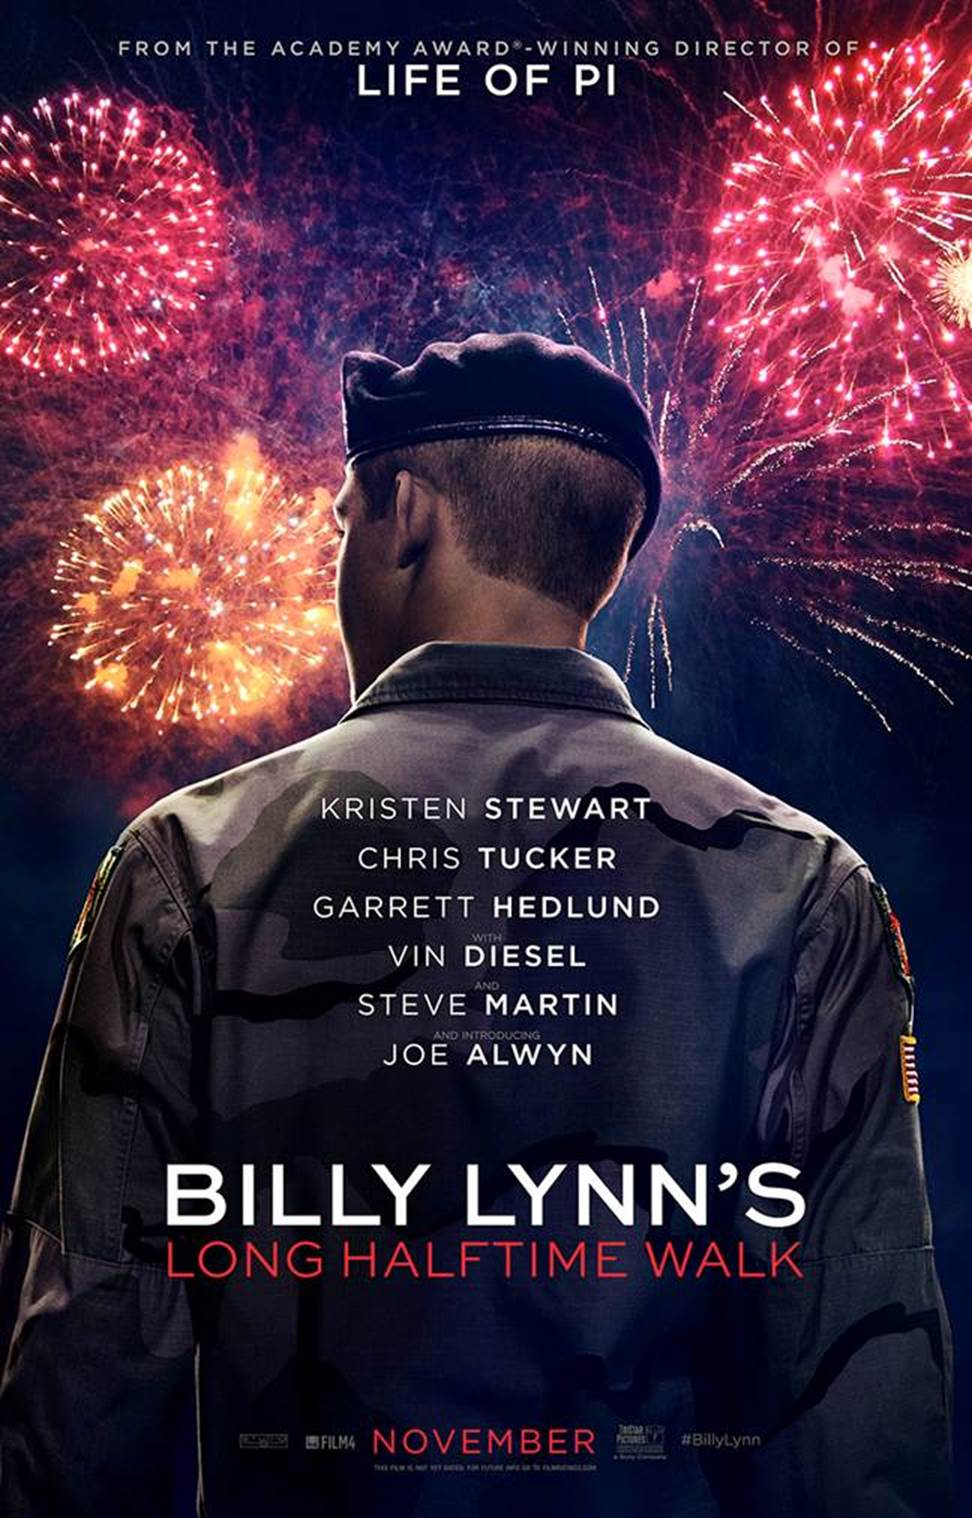 فیلم Billy Lynn's Long Halftime Walk 2016 دوبله فارسی